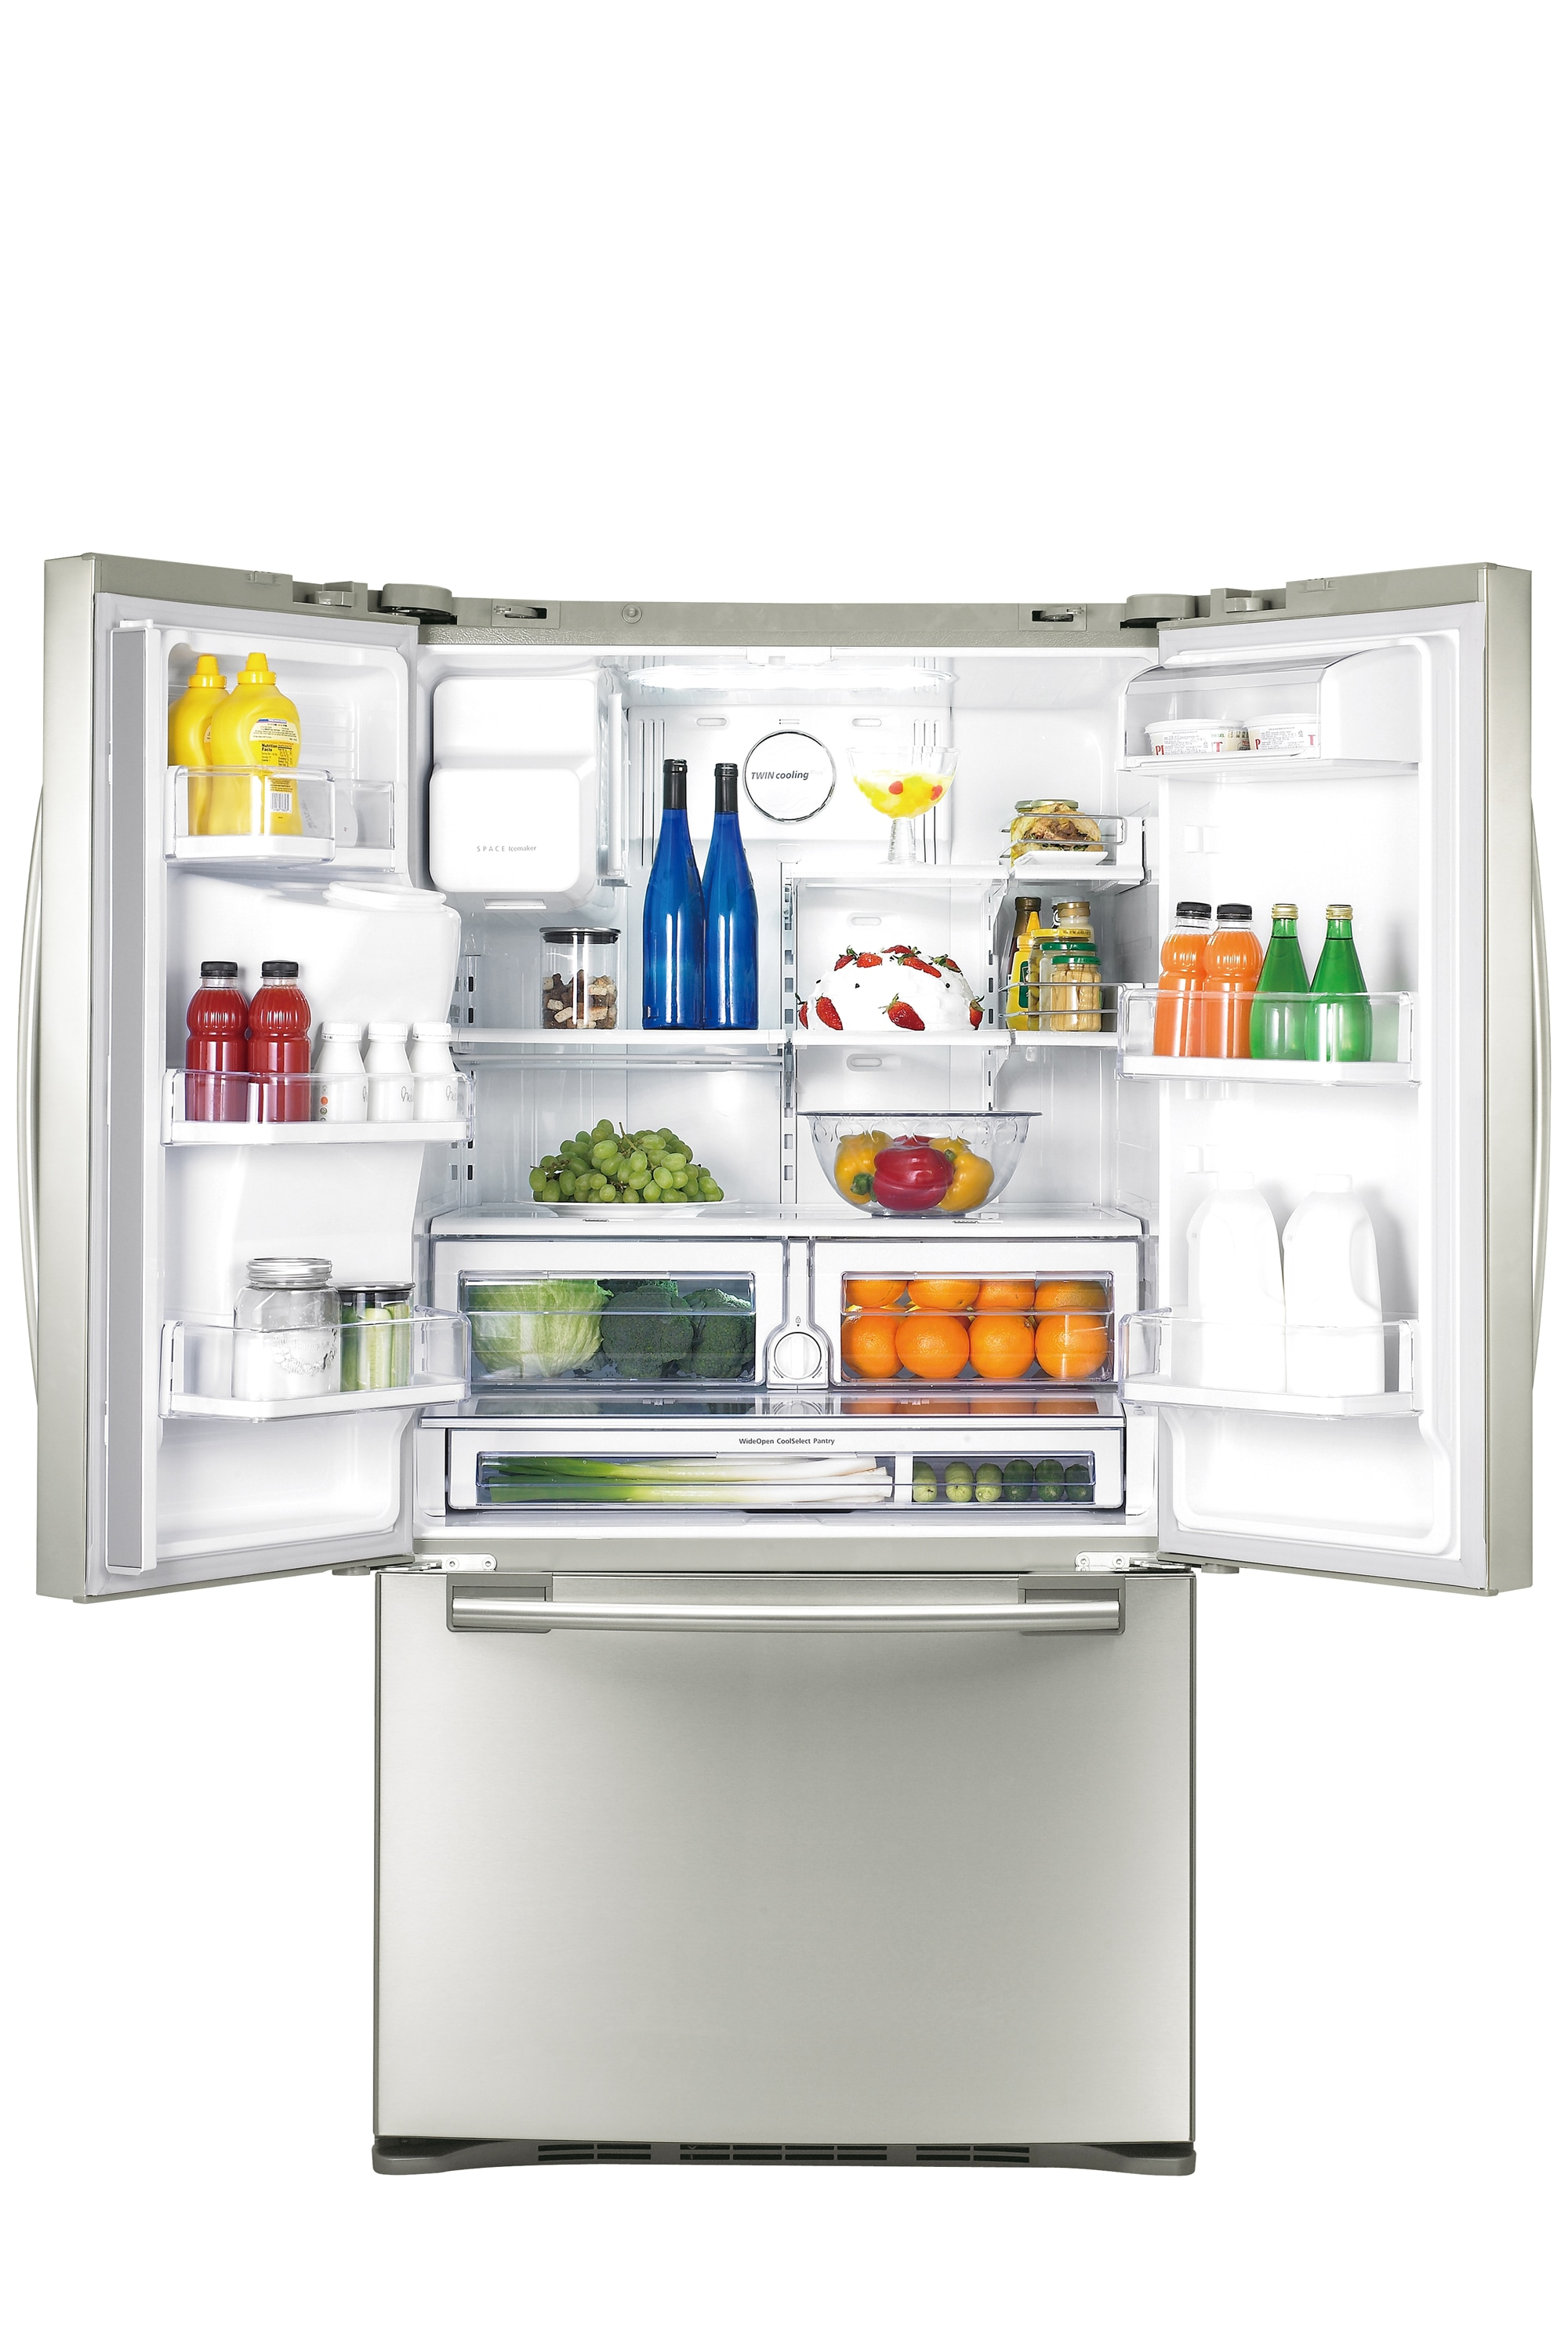 AW2-11 28.4 cu.ft 3-Door French Door Refrigerator (Stainless Steel)